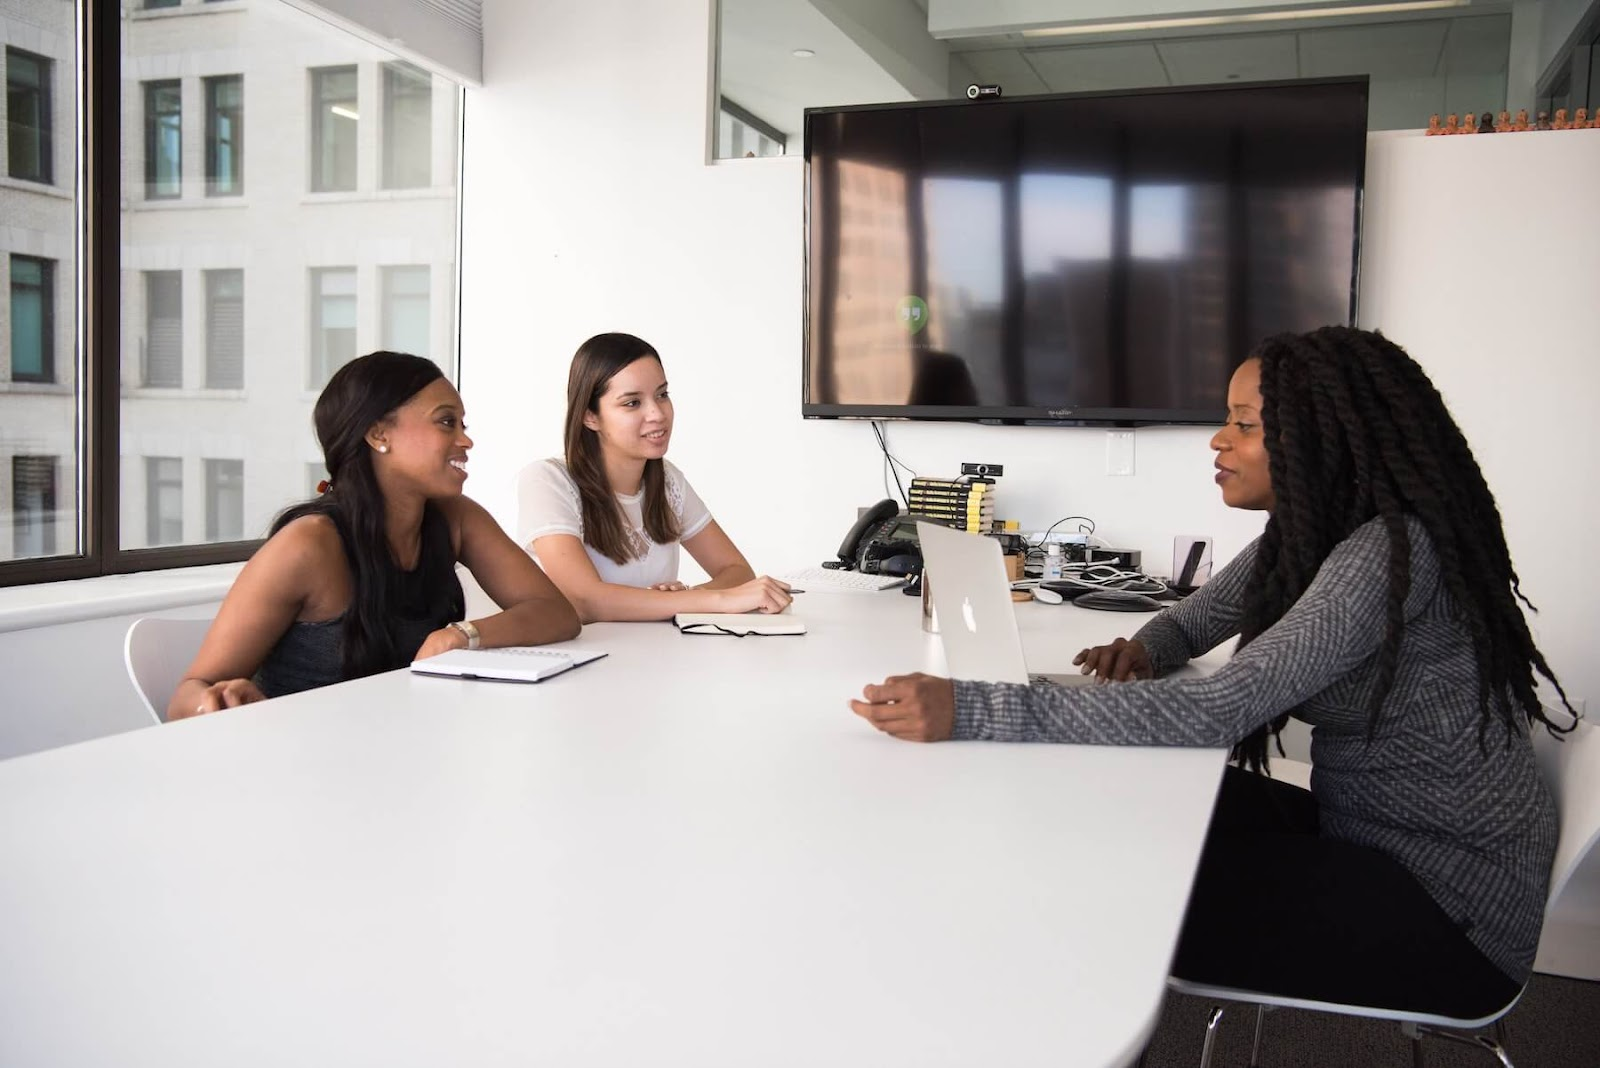 three people sitting around a conference table brainstorming ideas.